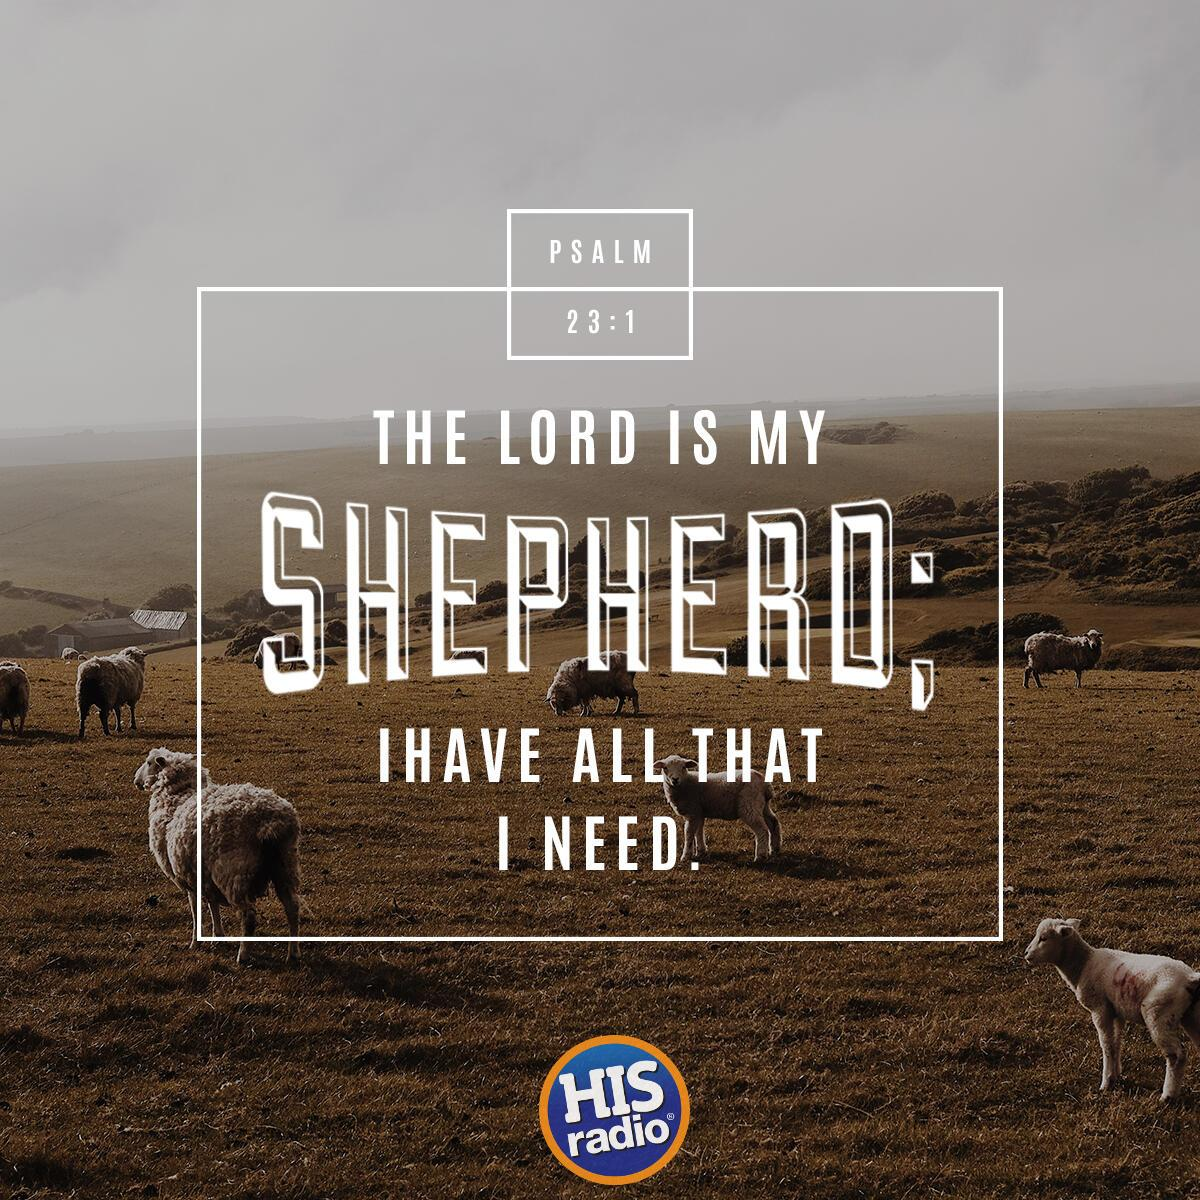 Psalm 23:1 - Verse of the Day